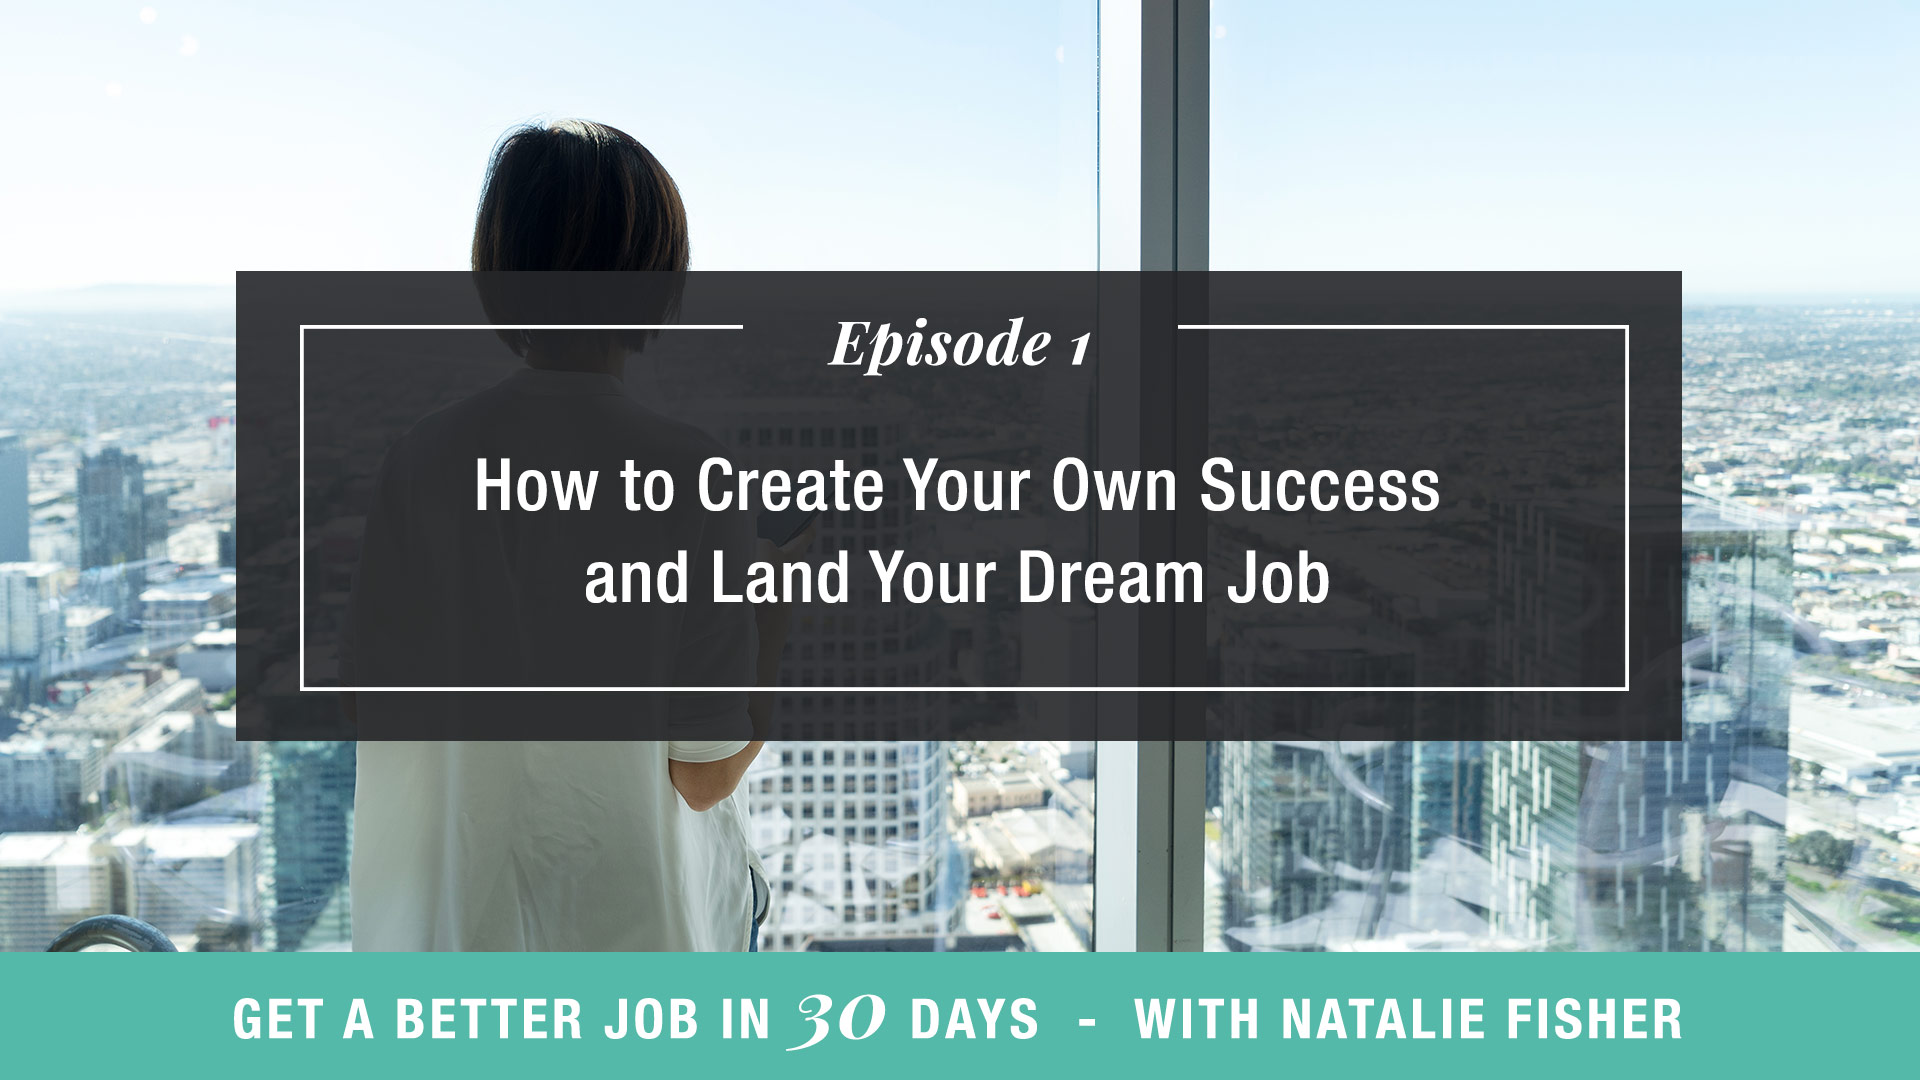 How to Create Your Own Success and Land Your Dream Job